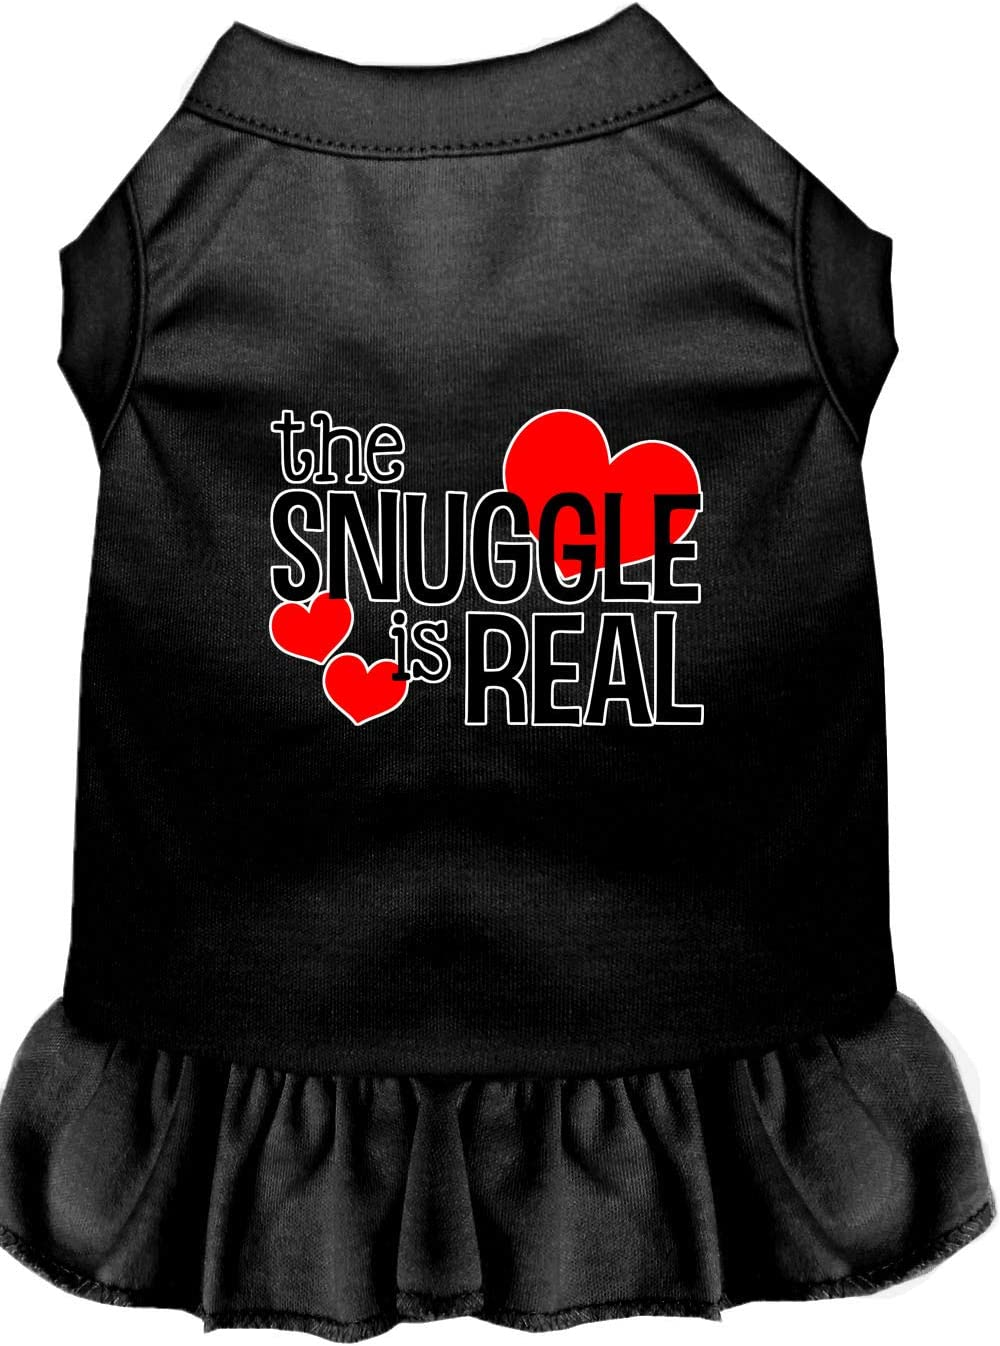 Mirage Pet Product The Snuggle is Dress Bl Cheap mail order shopping Screen Dog Print Real overseas